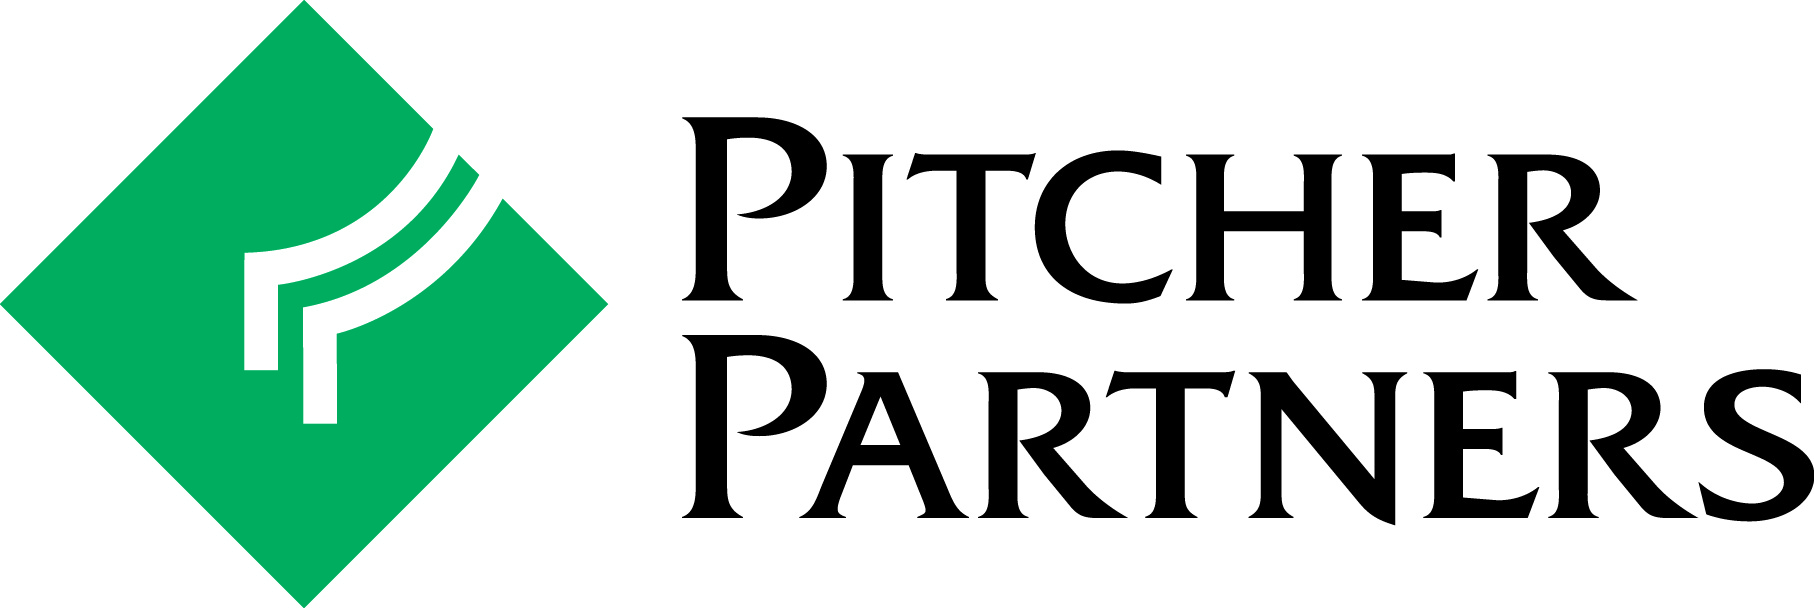 Pitcher Partners 2020